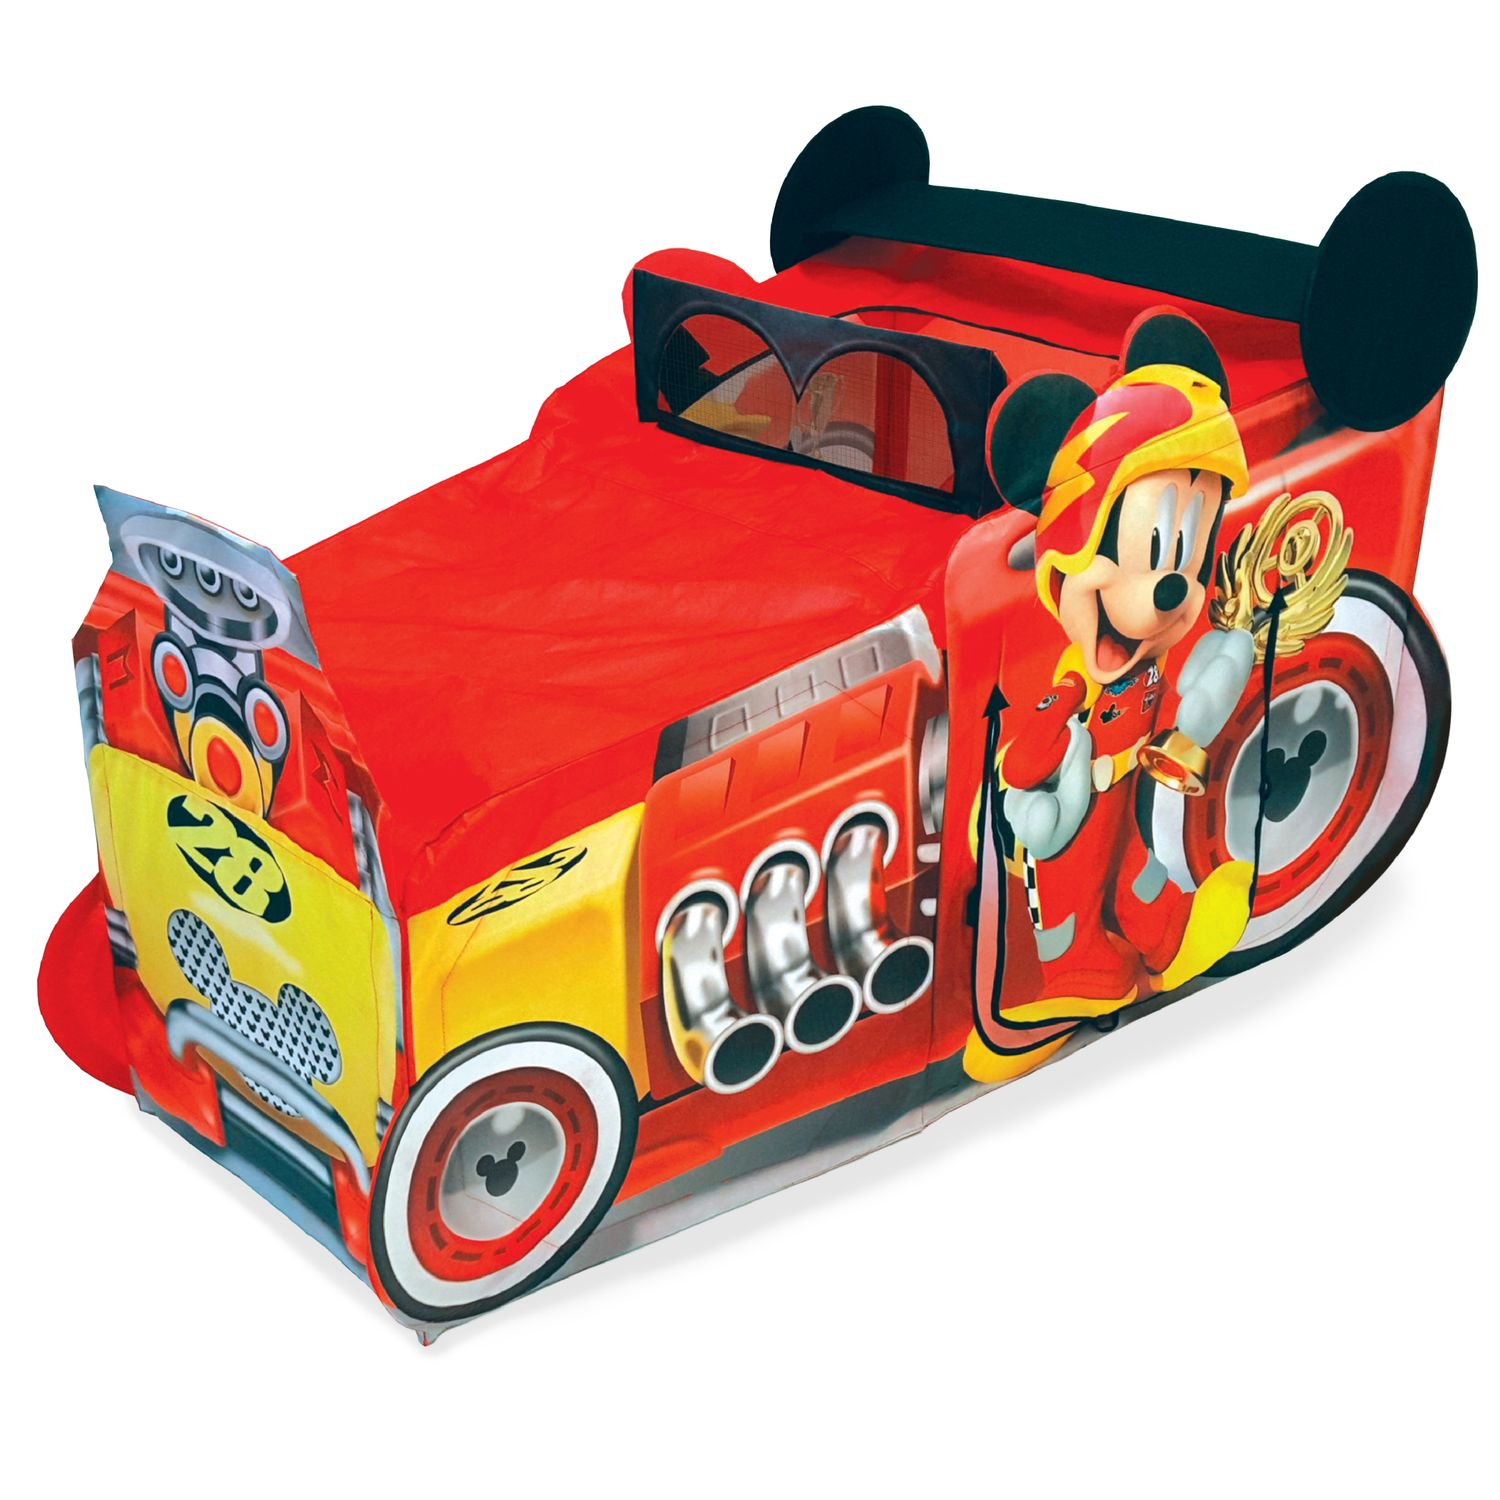 Disneyu0027s Mickey u0026 The Roadster Racers Vehicle Play Tent by Playhut  sc 1 st  Kohlu0027s & Mickey u0026 The Roadster Racers Vehicle Play Tent by Playhut